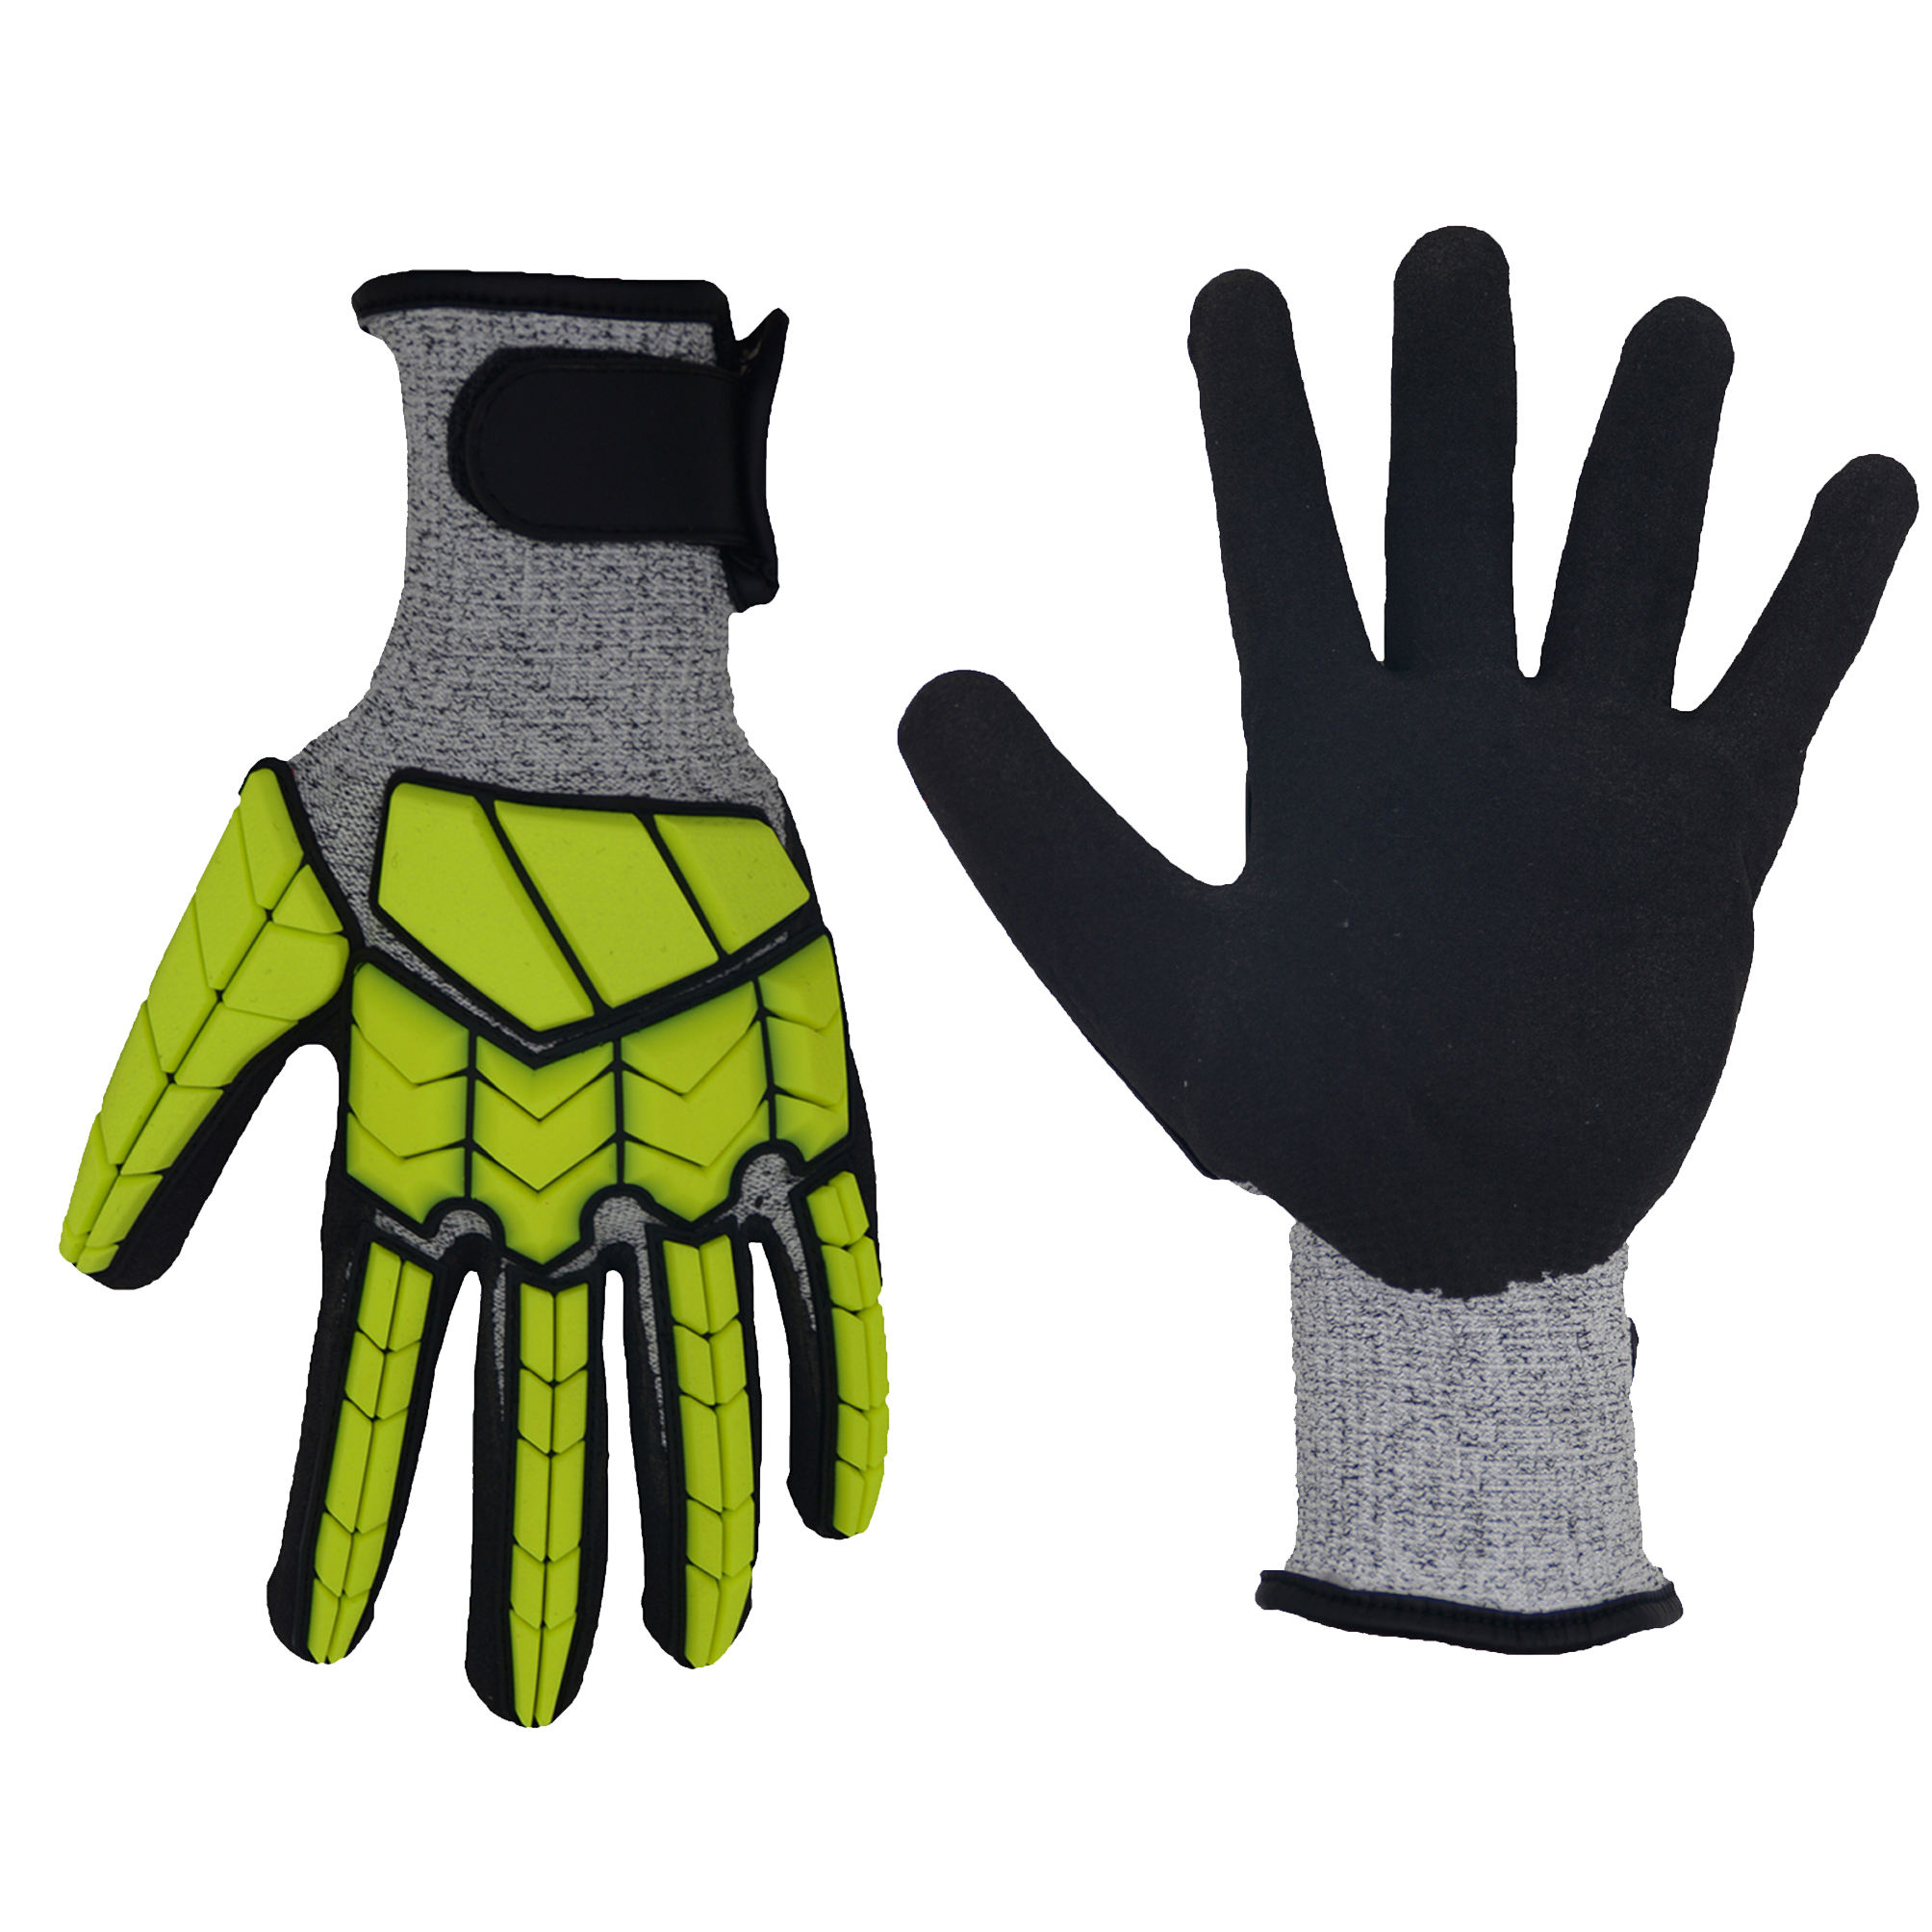 HANDLANDY Breathable Mens Safety Mechanic Work Gloves Cut Resistant Working Gloves Rubber Dipped For Construction Work